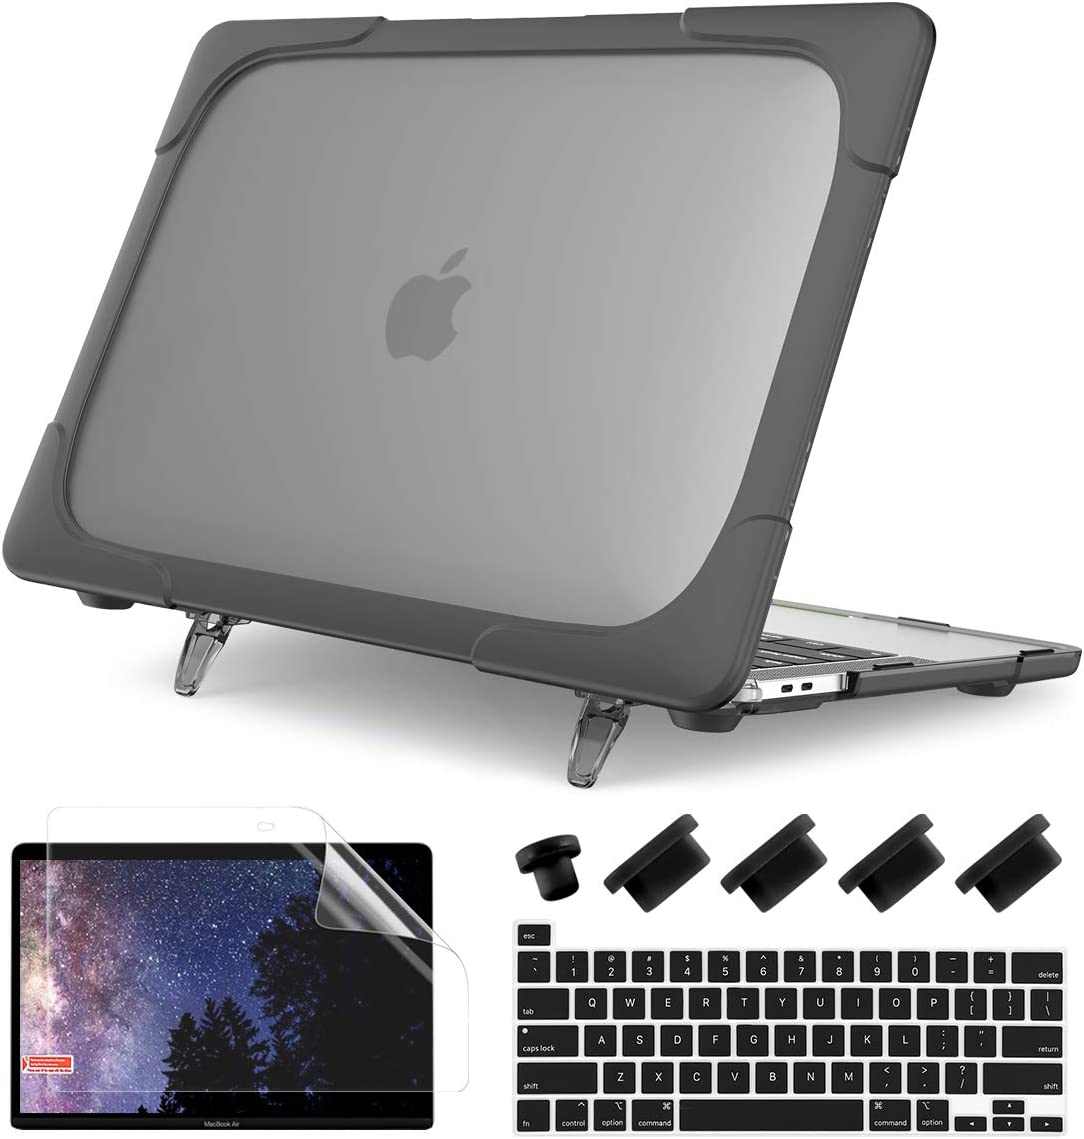 Batianda for MacBook Pro 13 inch Case 2020 Release A2338 M1 A2289 A2251, Heavy Duty Plastic Hard Shell Cover with Fold Kickstand Shockproof Function for Newest MacBook Pro 13 inch Touch Bar, Grey